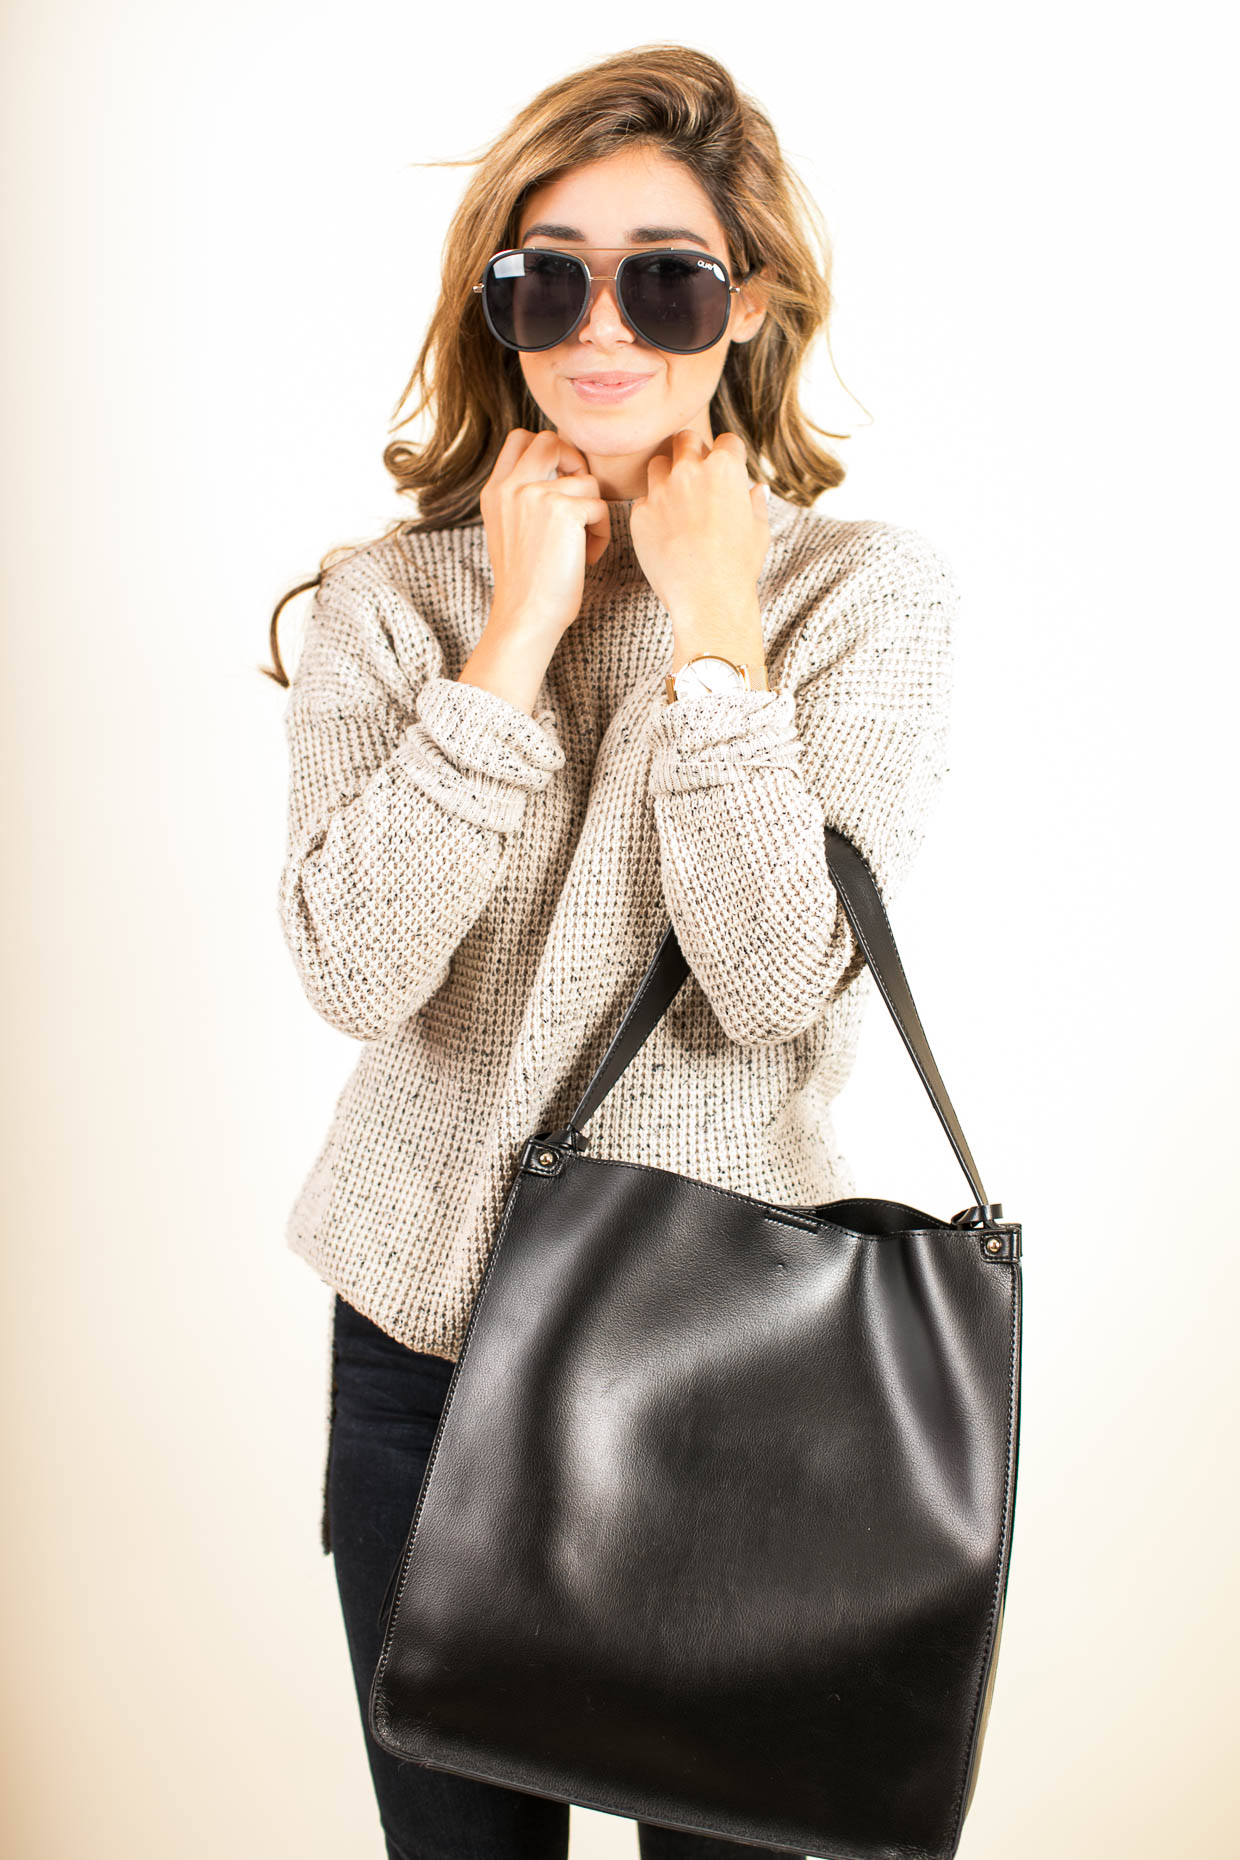 Fashion blogger The Darling Detail wears BP. Knit High/Low Tunic, FRAME 'Le High Skinny' High Rise Crop Jeans (Sterling), Quay Australia 'Needing Fame' 65mm Aviator Sunglasses, Larsson & Jennings 'Lugano' Mesh Strap Watch, and Sole Society Karlie Faux Leather Bucket Bag